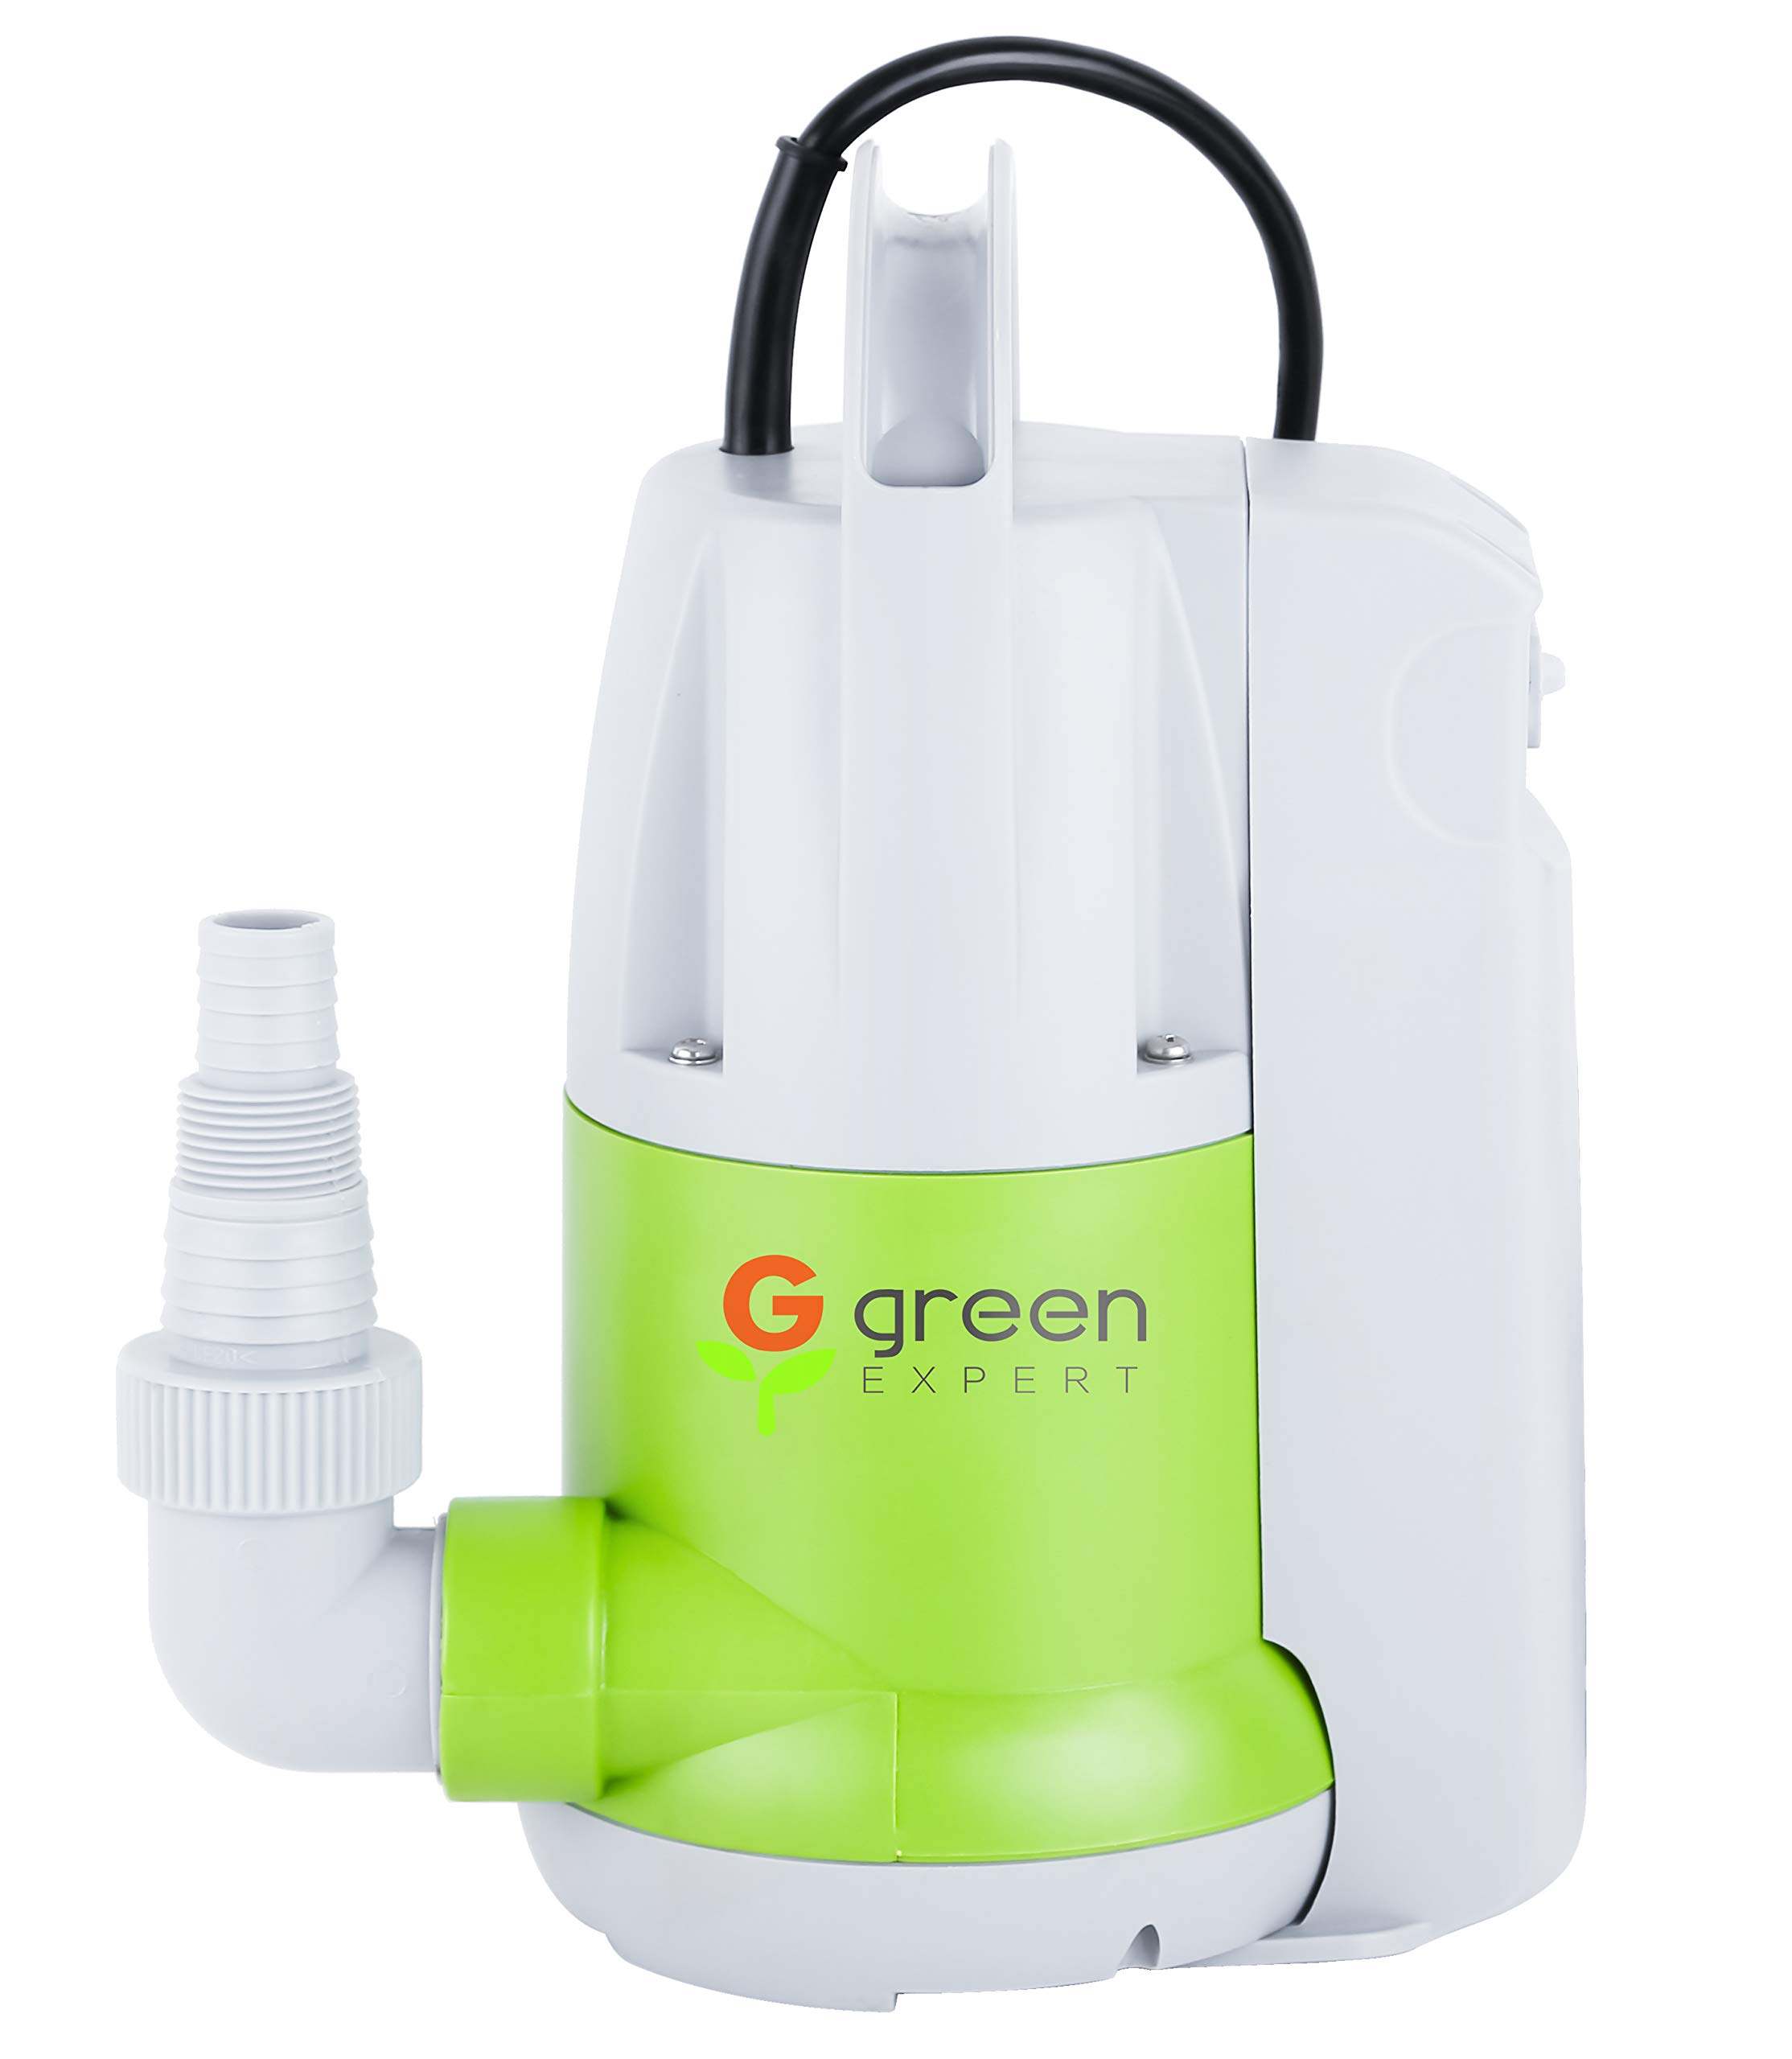 Green Expert 203623 1/3HP Thermoplastic Portable Electric Water Removal Pump with Unique Switchable Built-in Switch Auto/Manual Modes for Multipurpose Water Transfer Basement&Ponding, 25 feet Cord by G green EXPERT